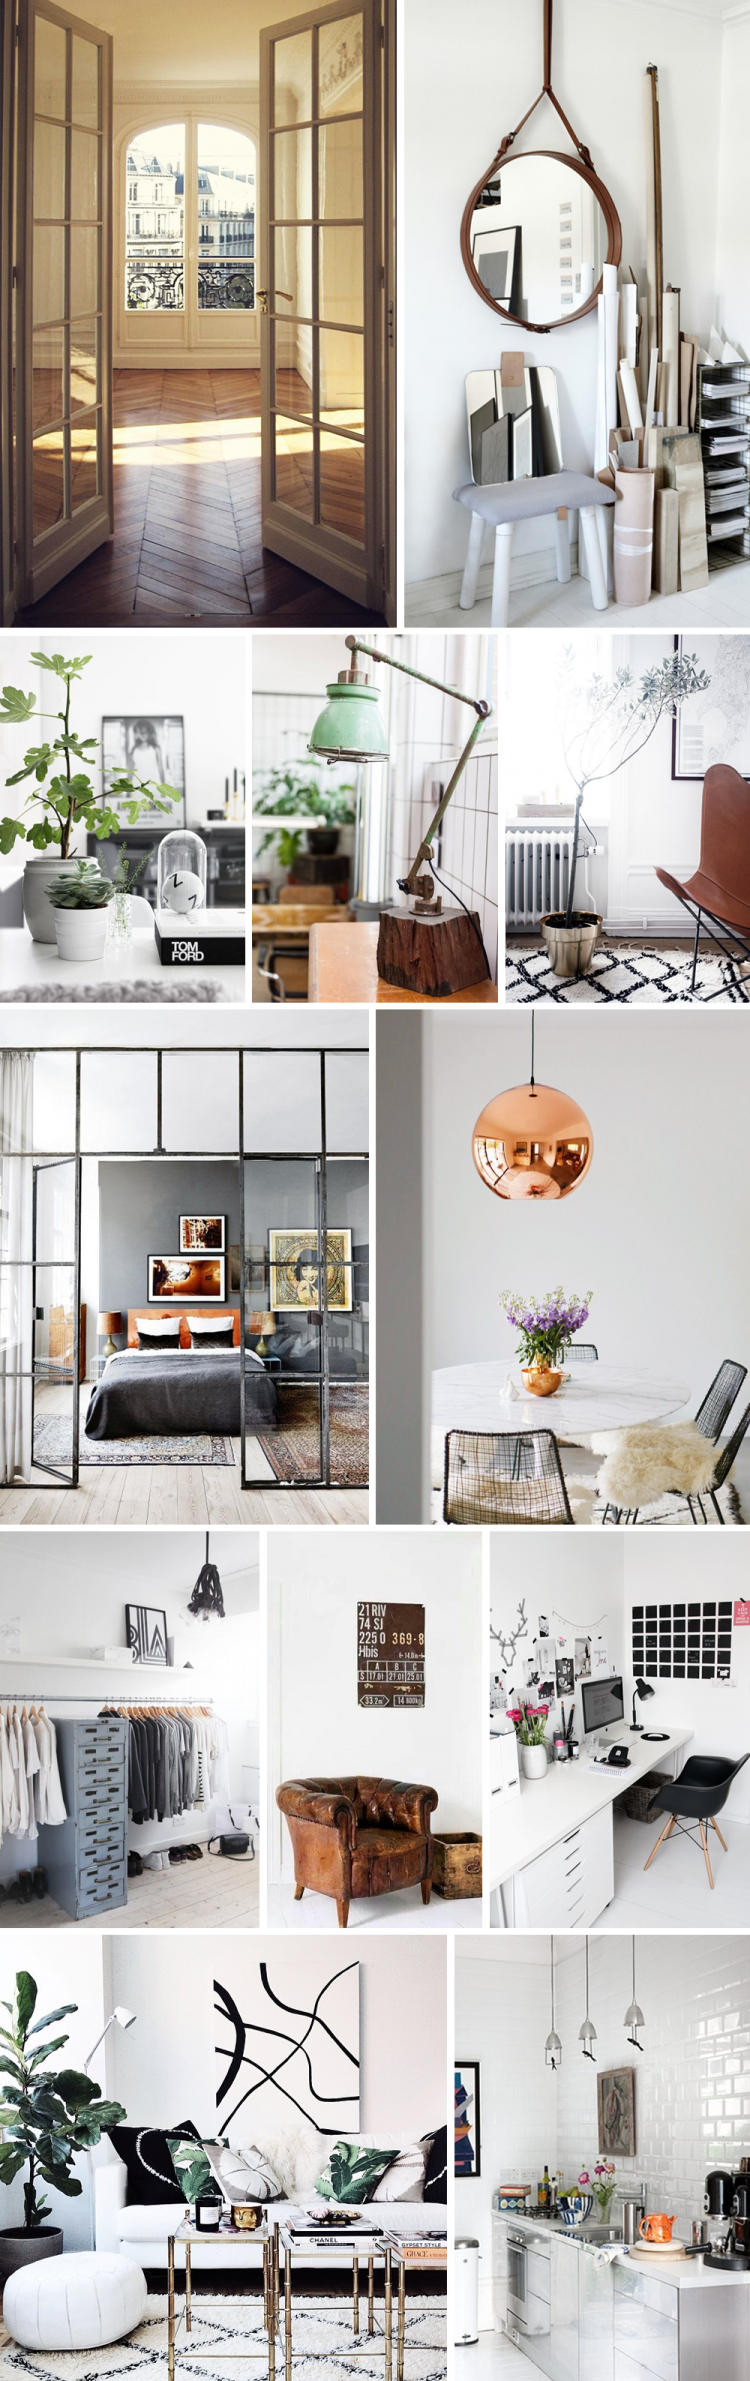 interior design boligindretning mode fashion home inspiartion apartment kbh